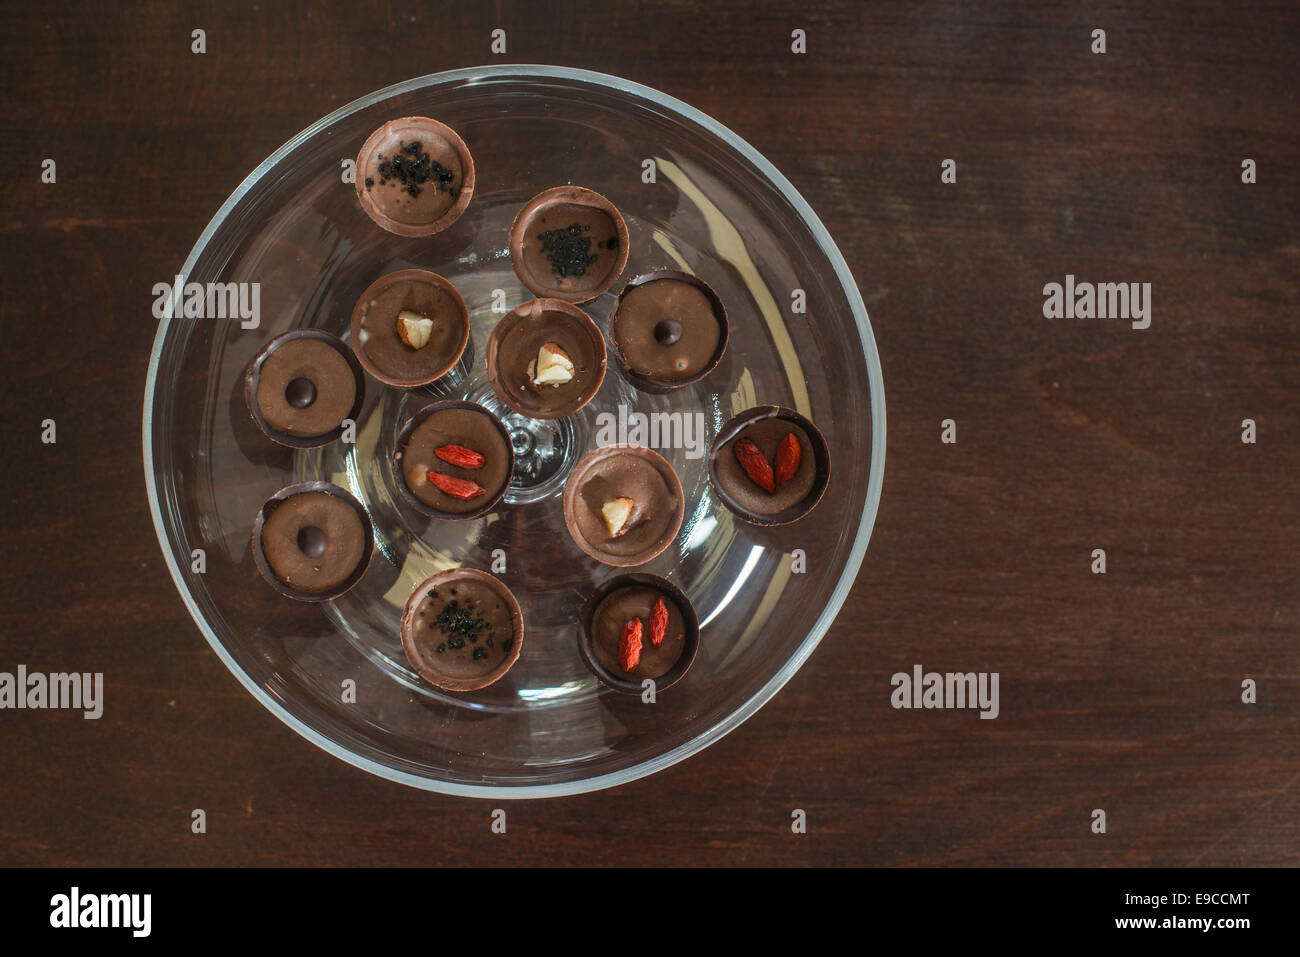 Chocolates in a luxurious glass dish. Various sweets - Stock Image